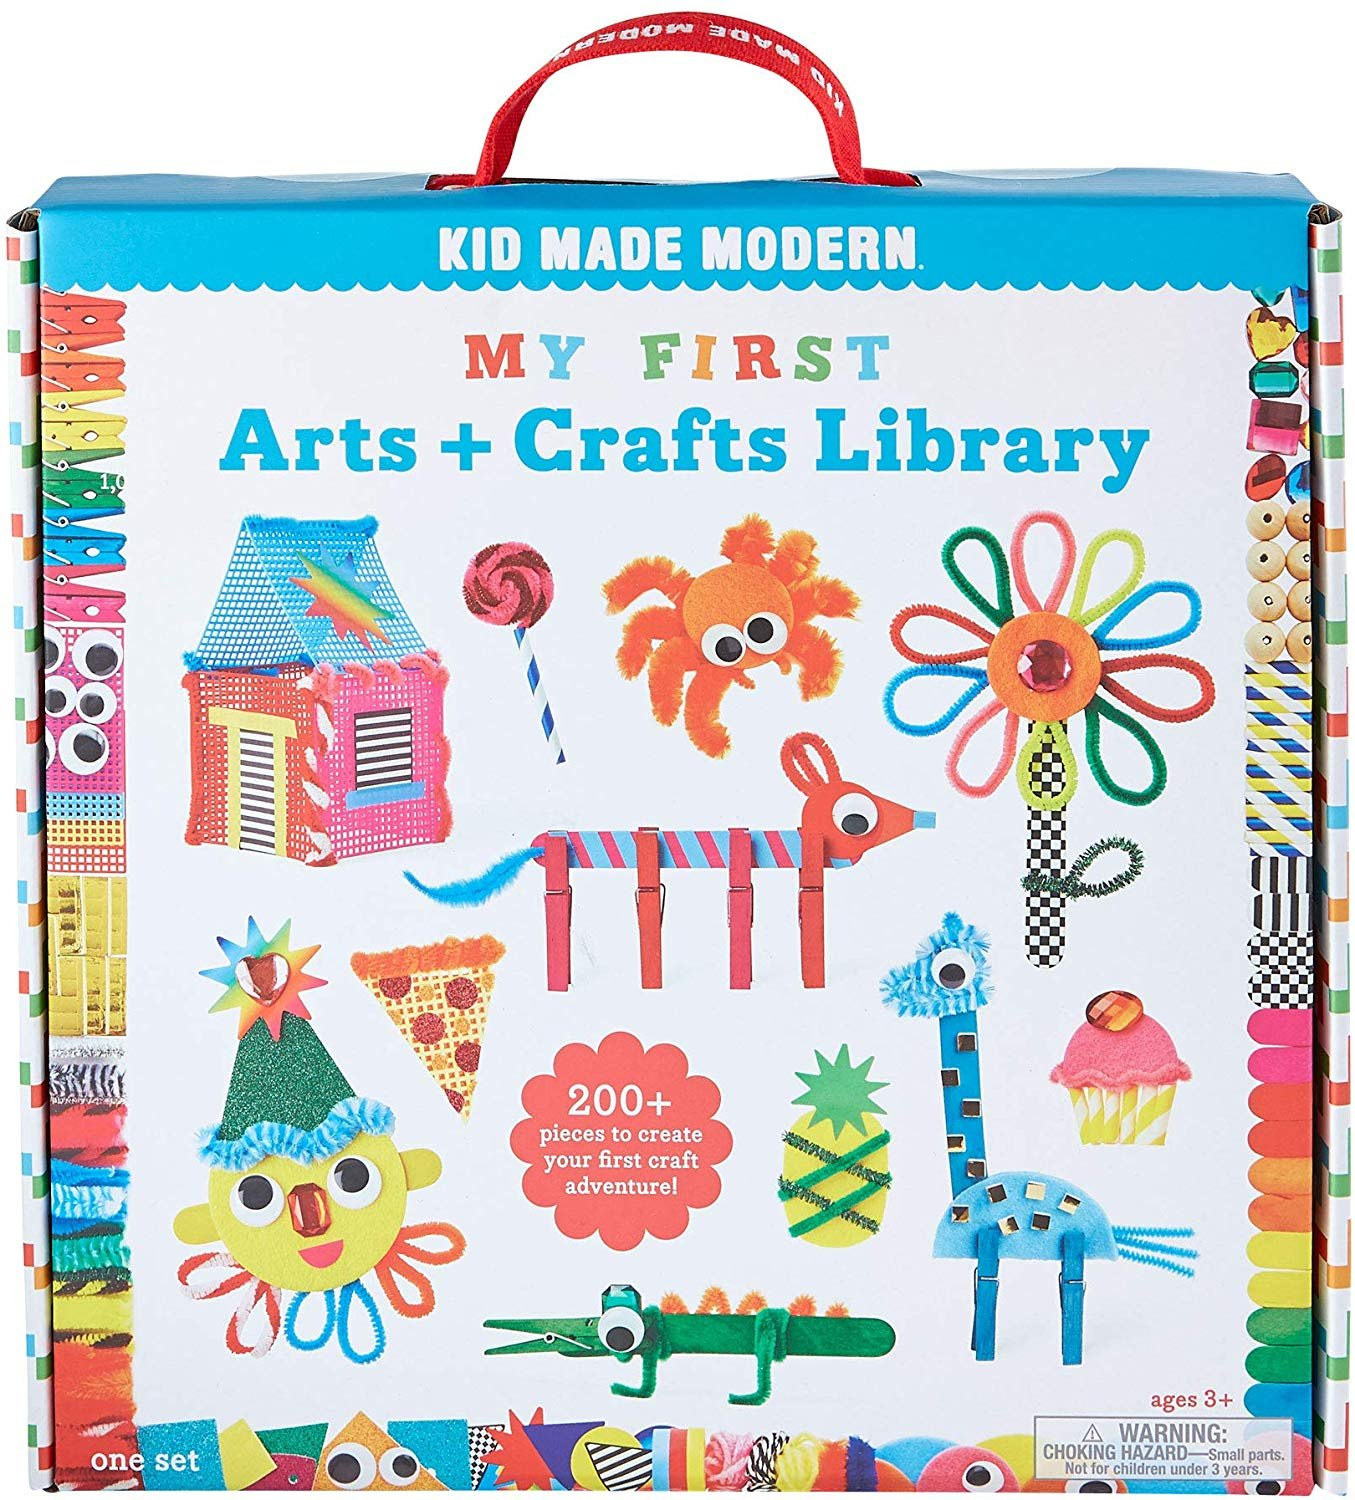 My First Arts and Crafts Library by Kid Made Modern